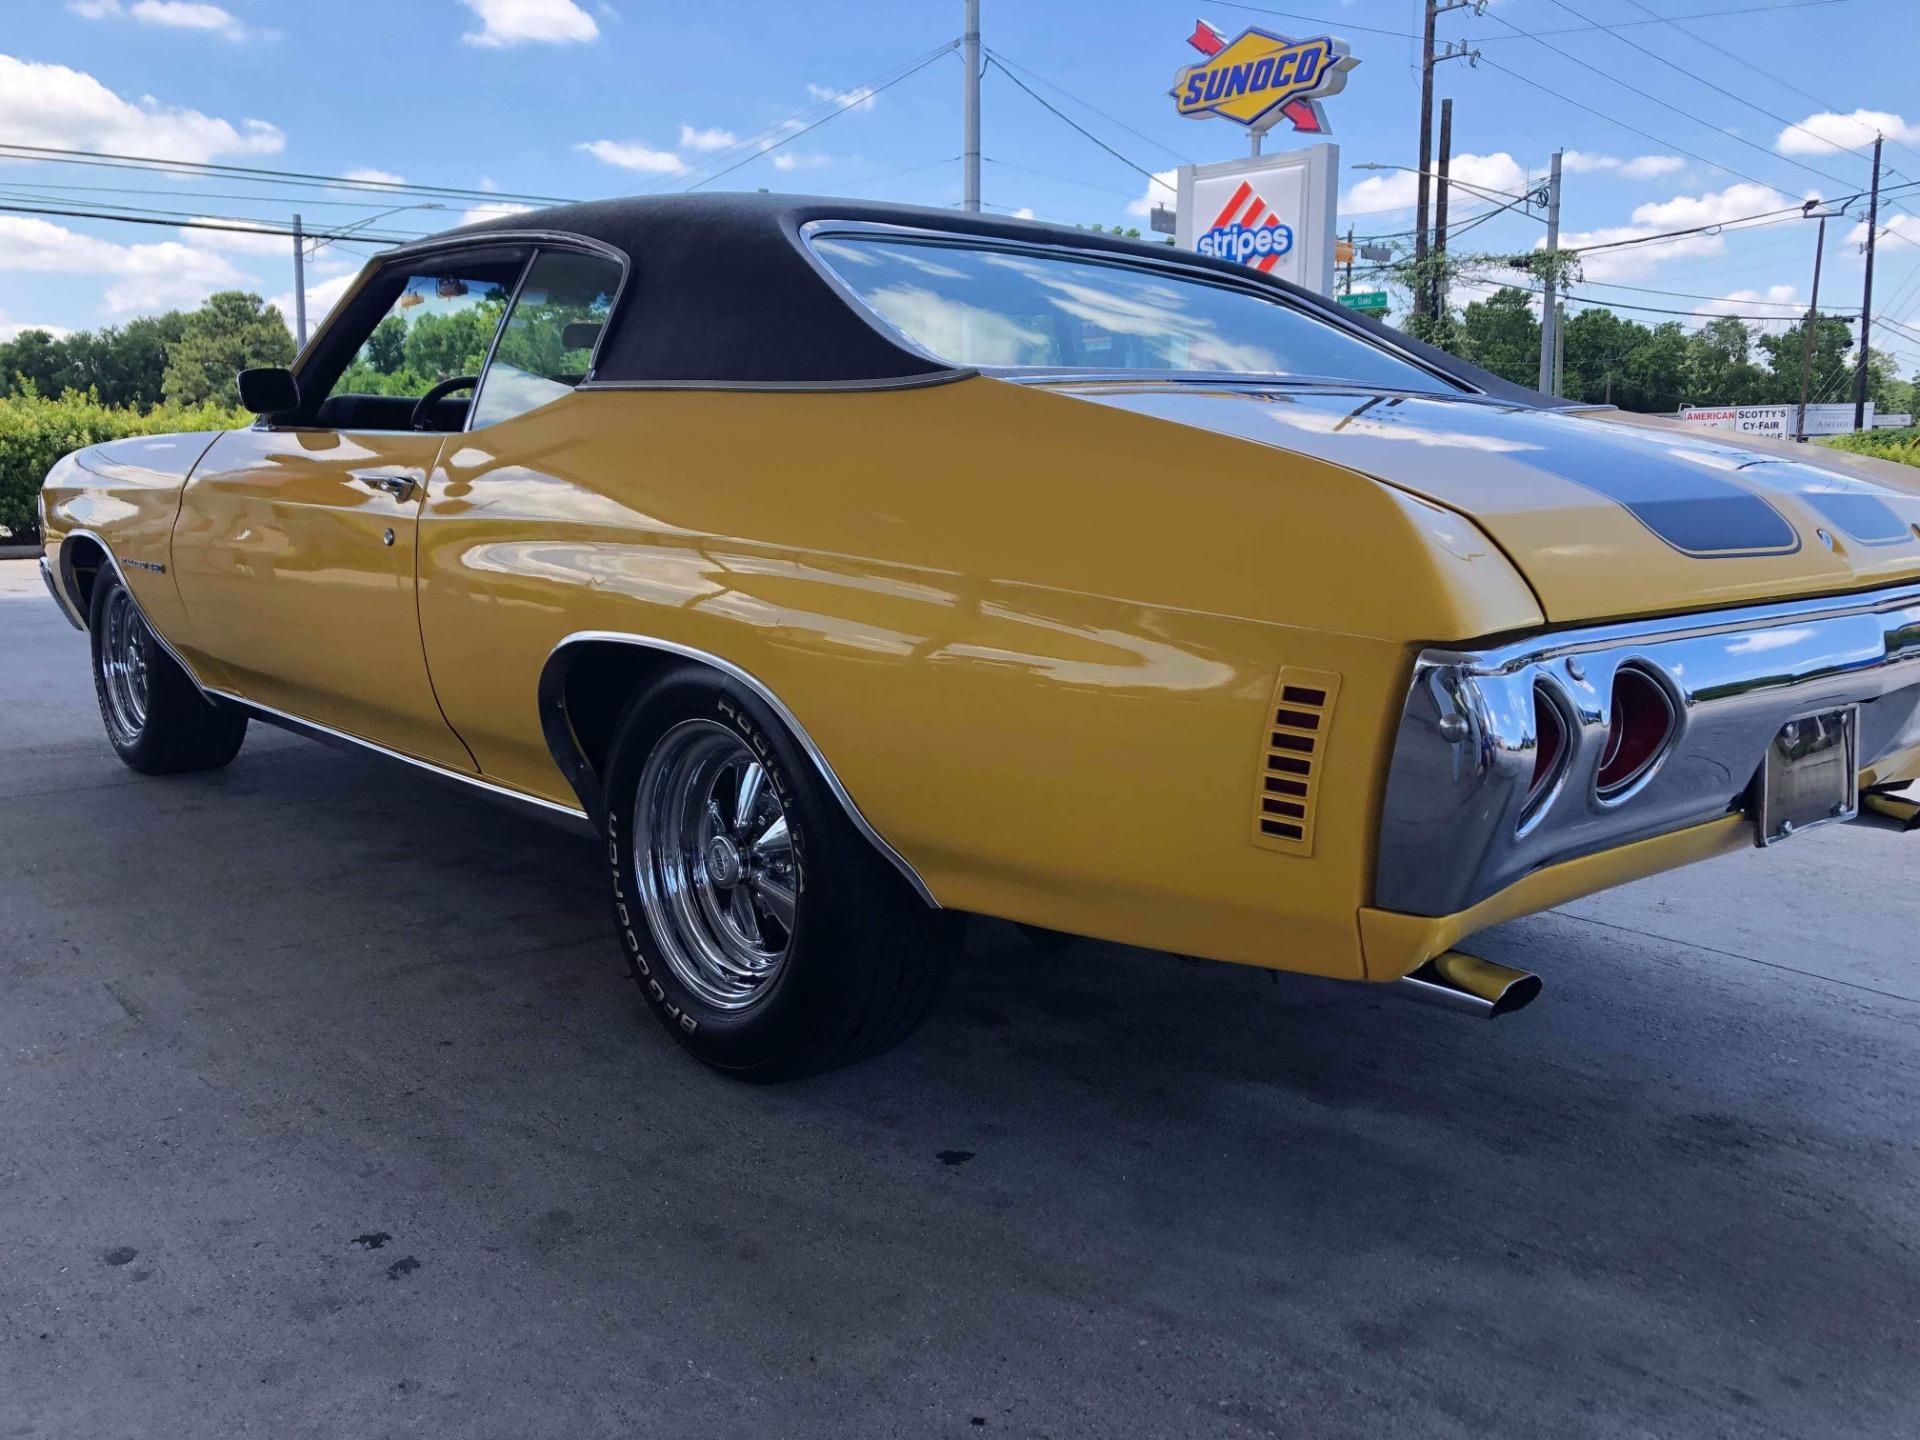 Used 1971 Chevrolet Chevelle -AC-NUMBERS MATCHING MALIBU-TEXAS MUSCLE CAR-RESTORED | Mundelein, IL